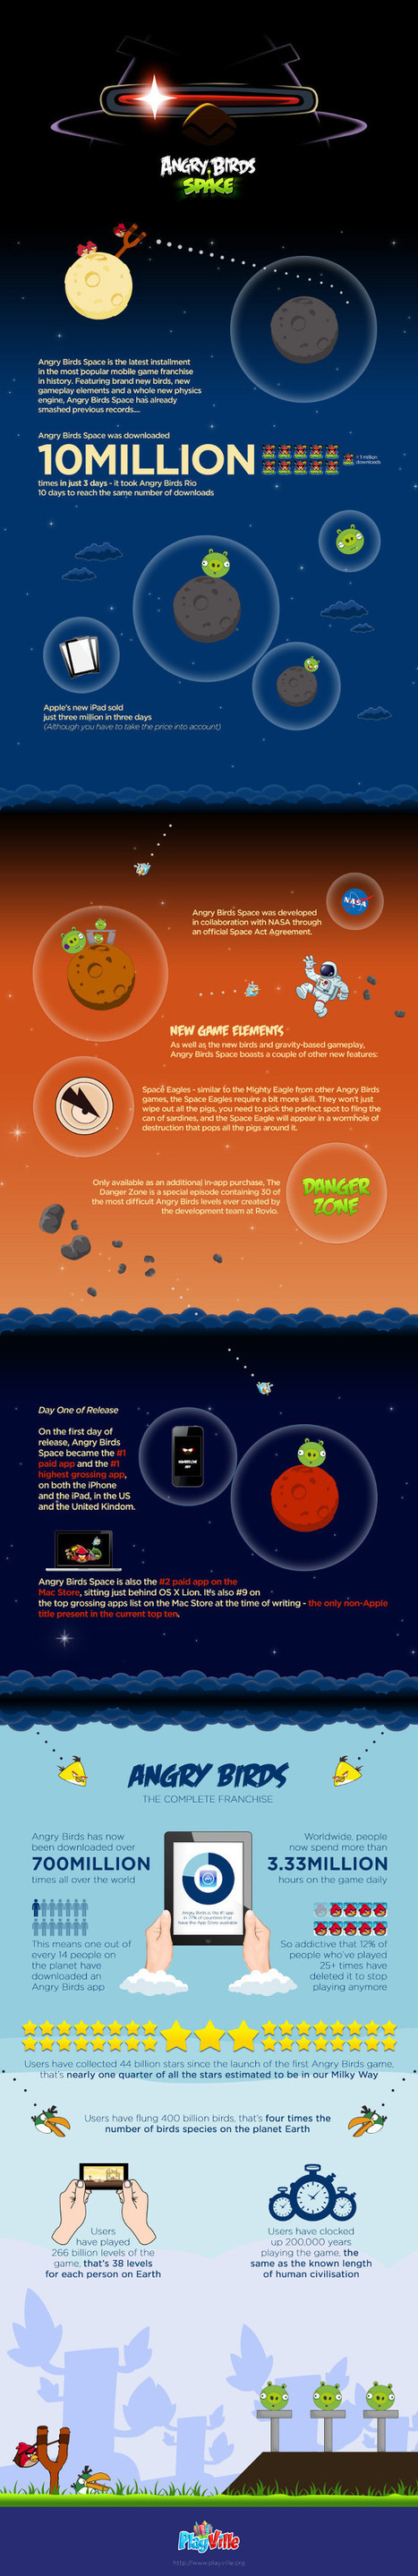 Most Download Game: Angry Birds vs Angry Birds Space | Infographics | clash of clans guide | Scoop.it